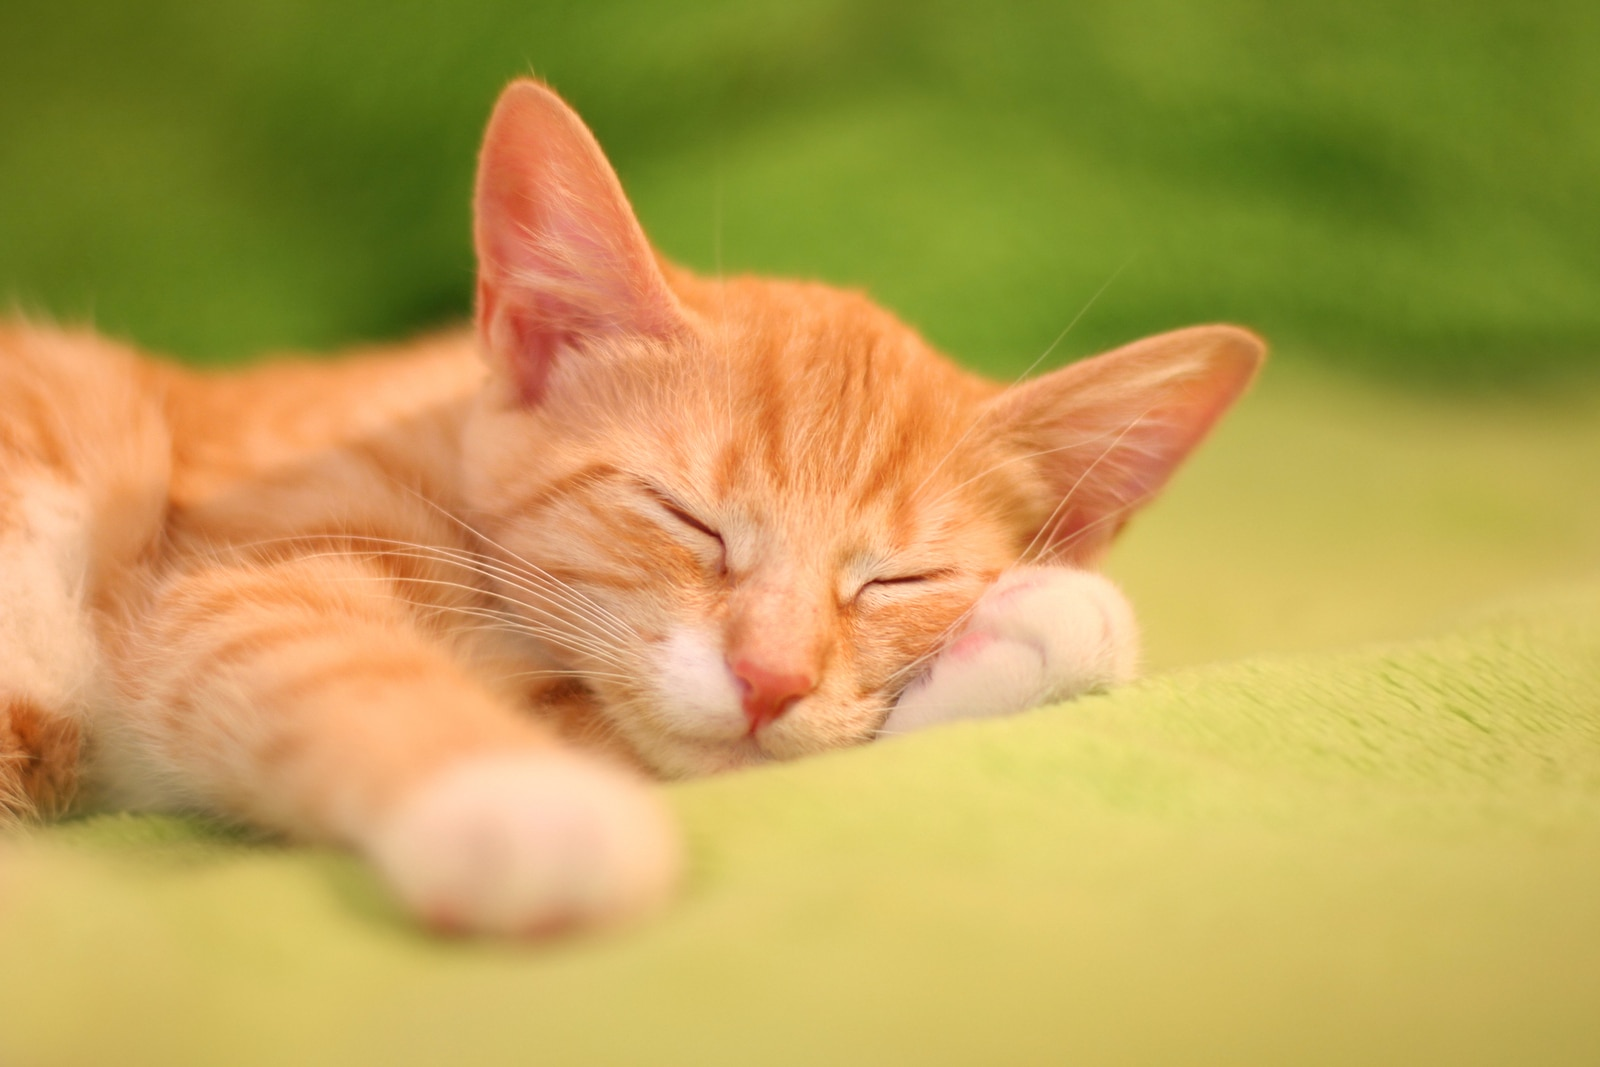 Small orange tabby kitten sleeps on a green blanket.